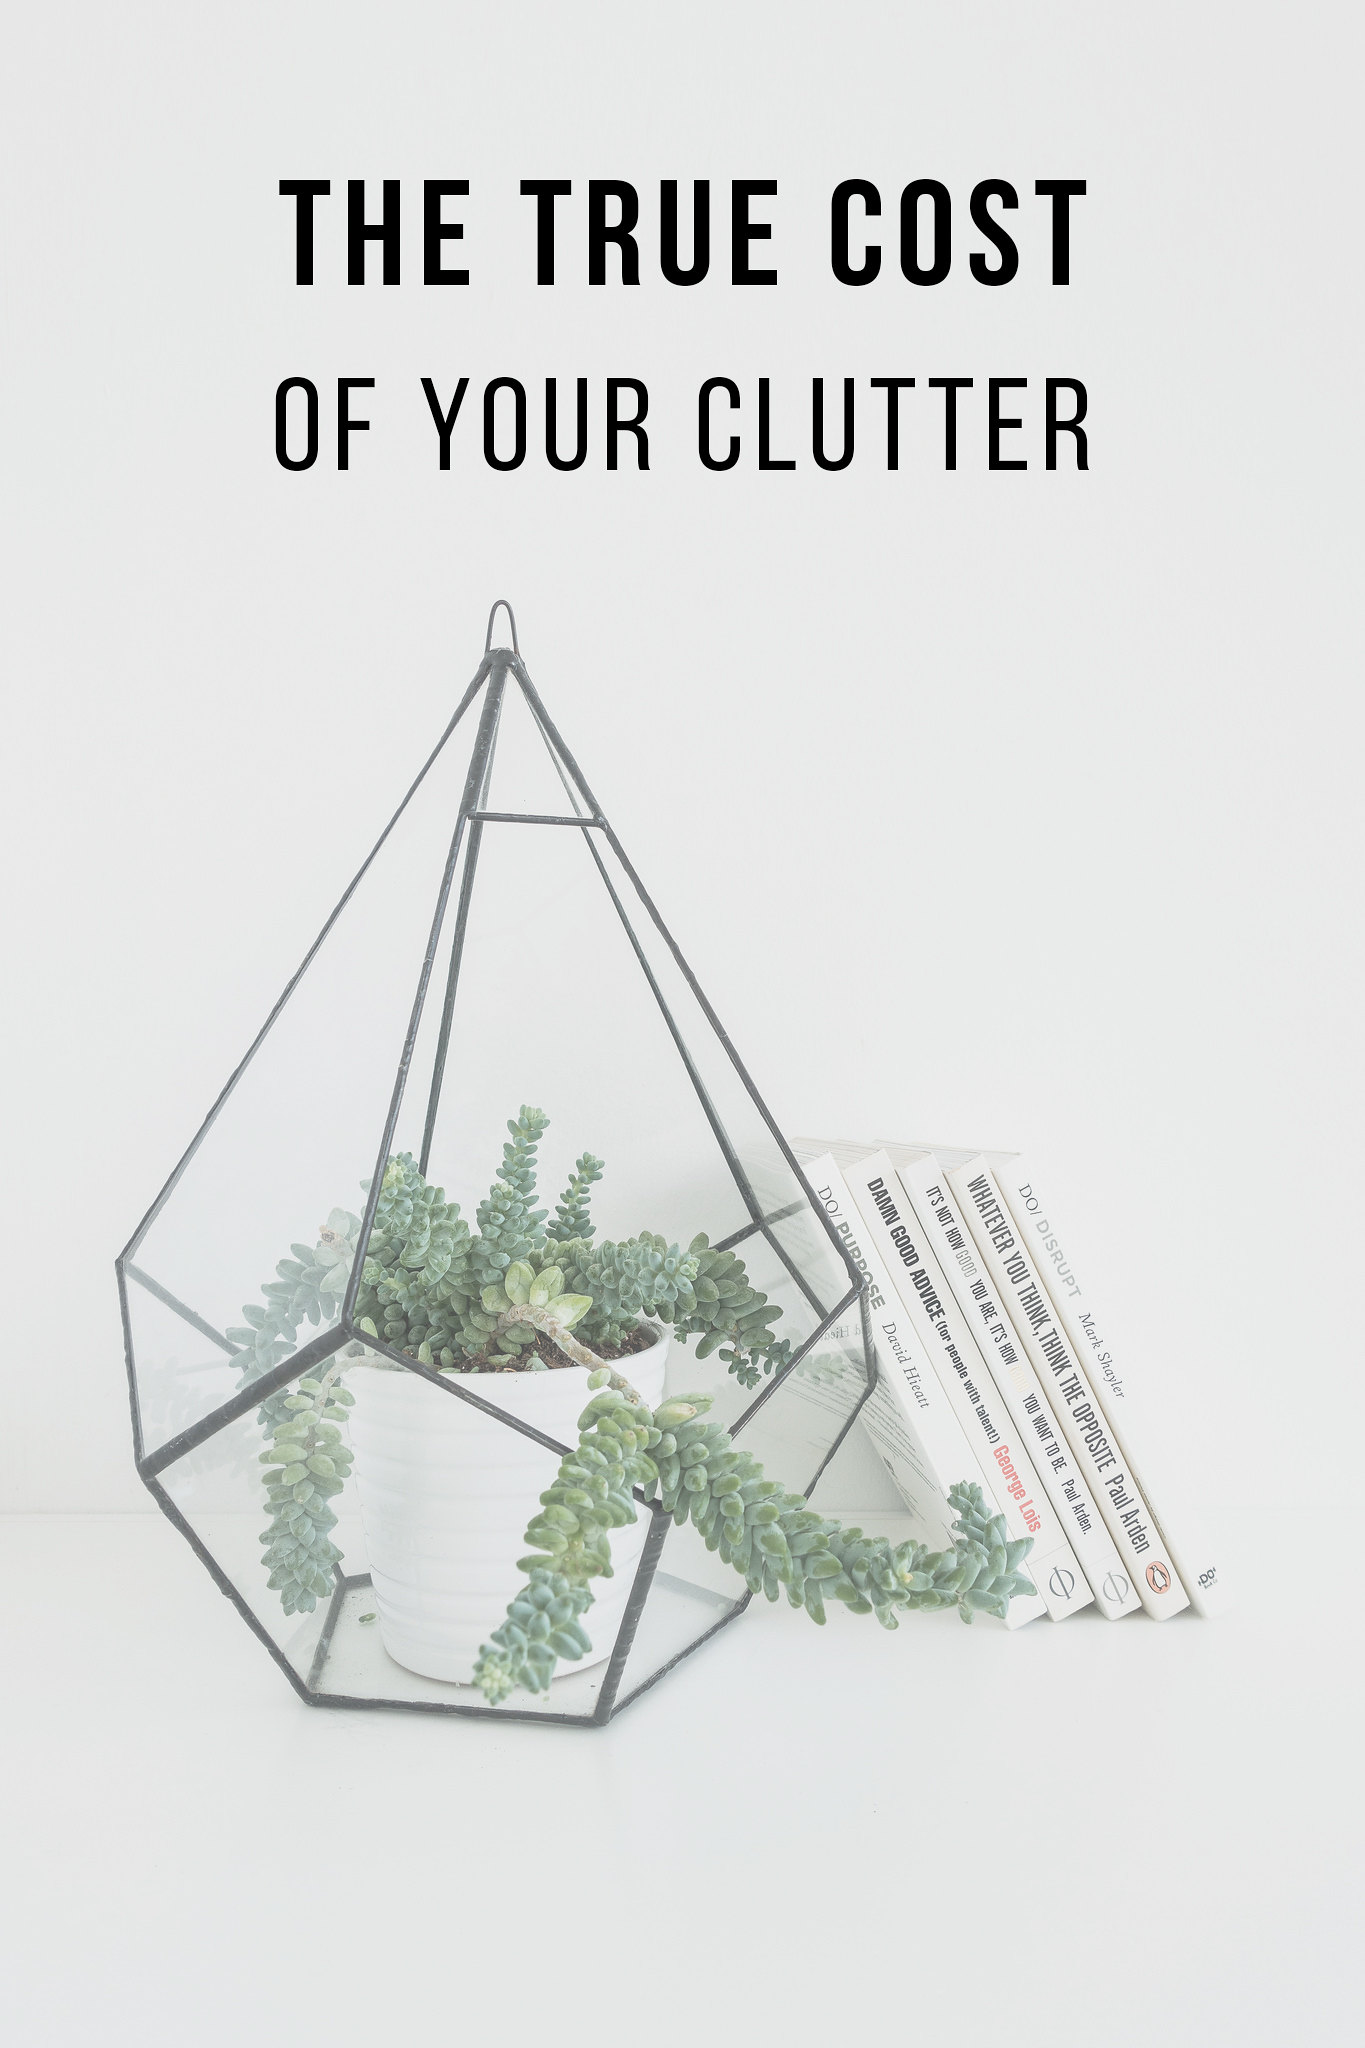 The True Cost Of Your Clutter